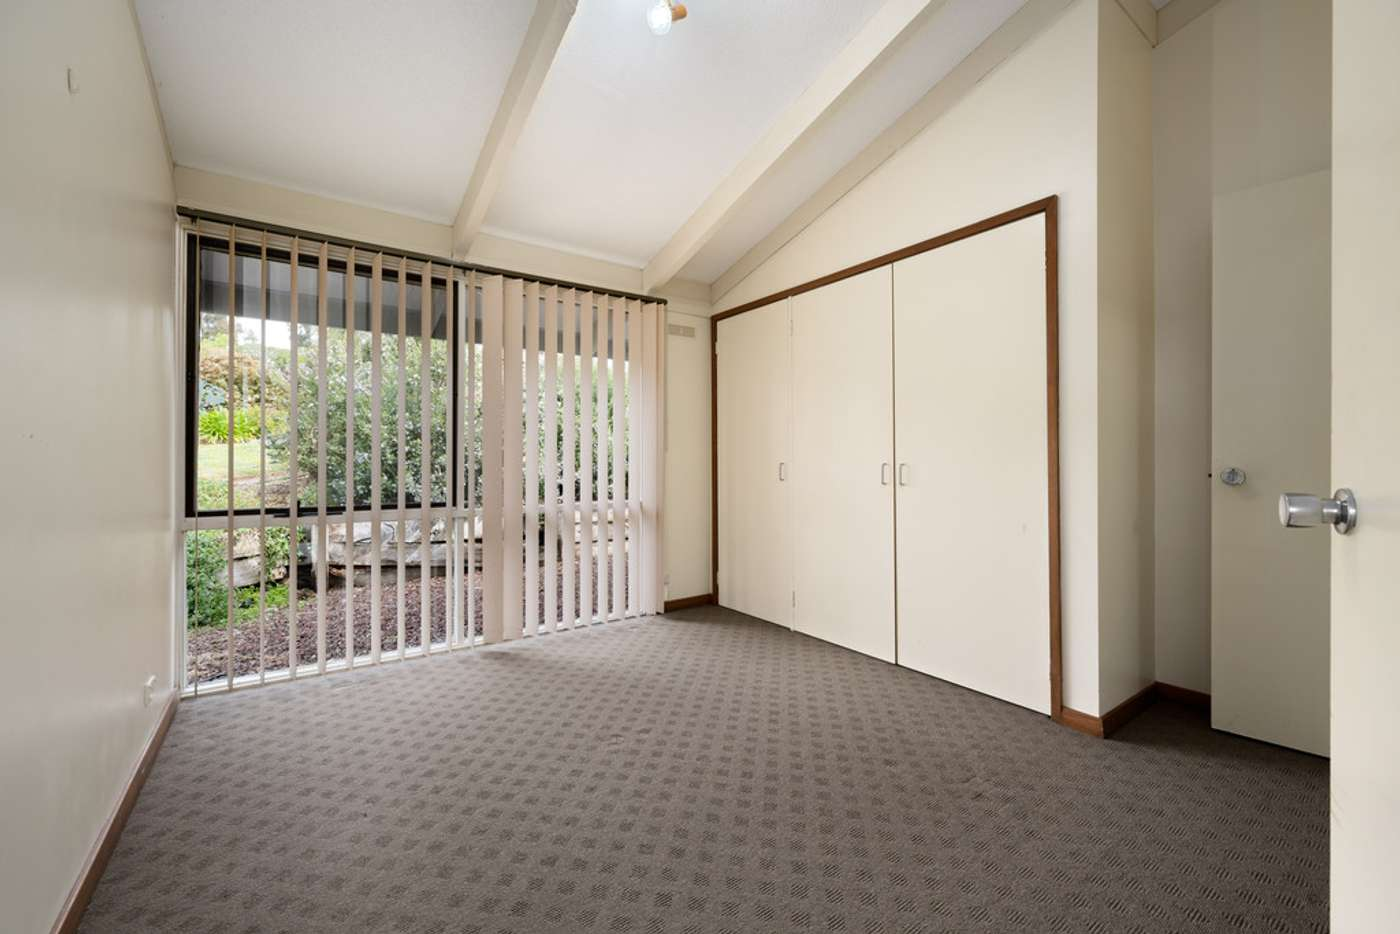 Fifth view of Homely house listing, 25 Wiltshire Crescent, Wodonga VIC 3690